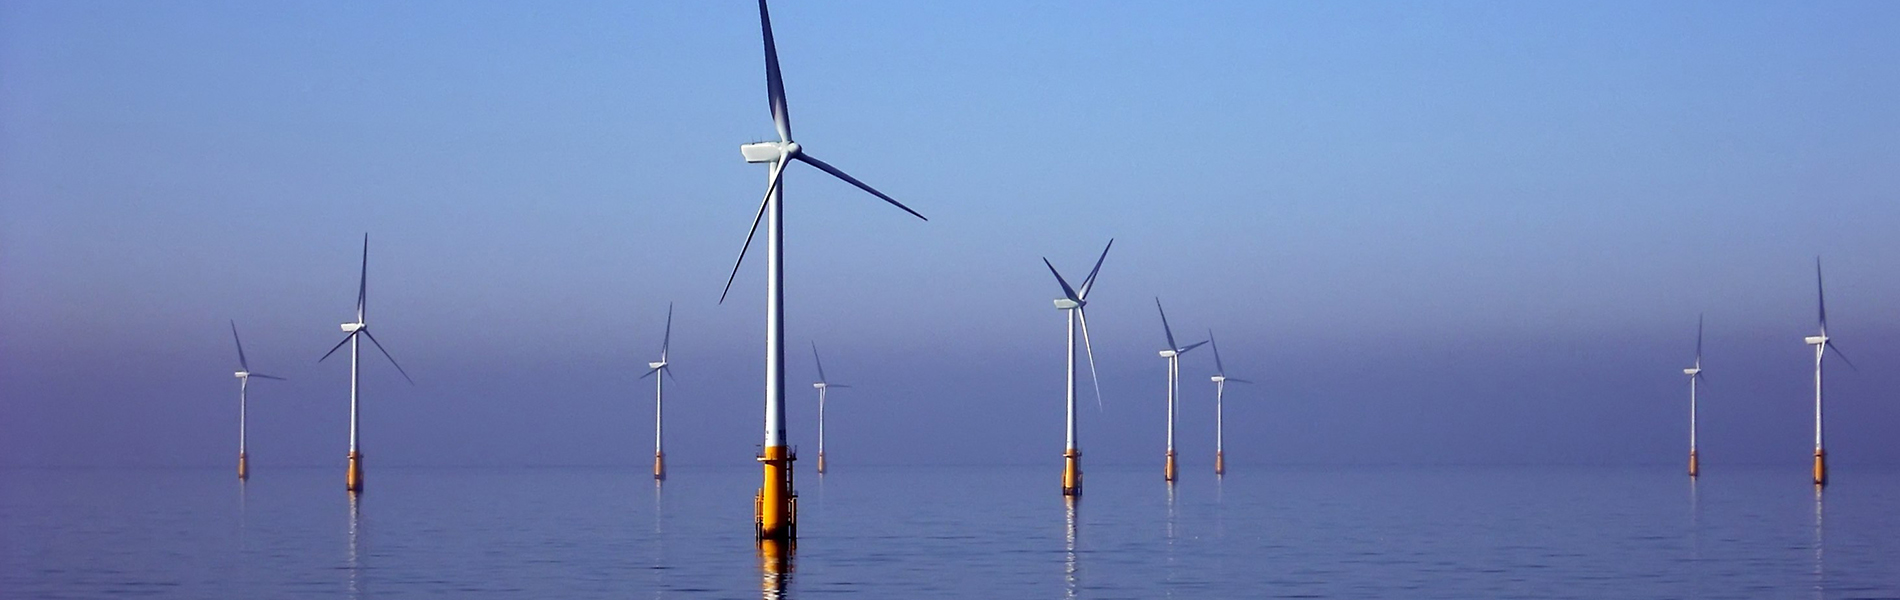 Offshore wind web_1900 by 600